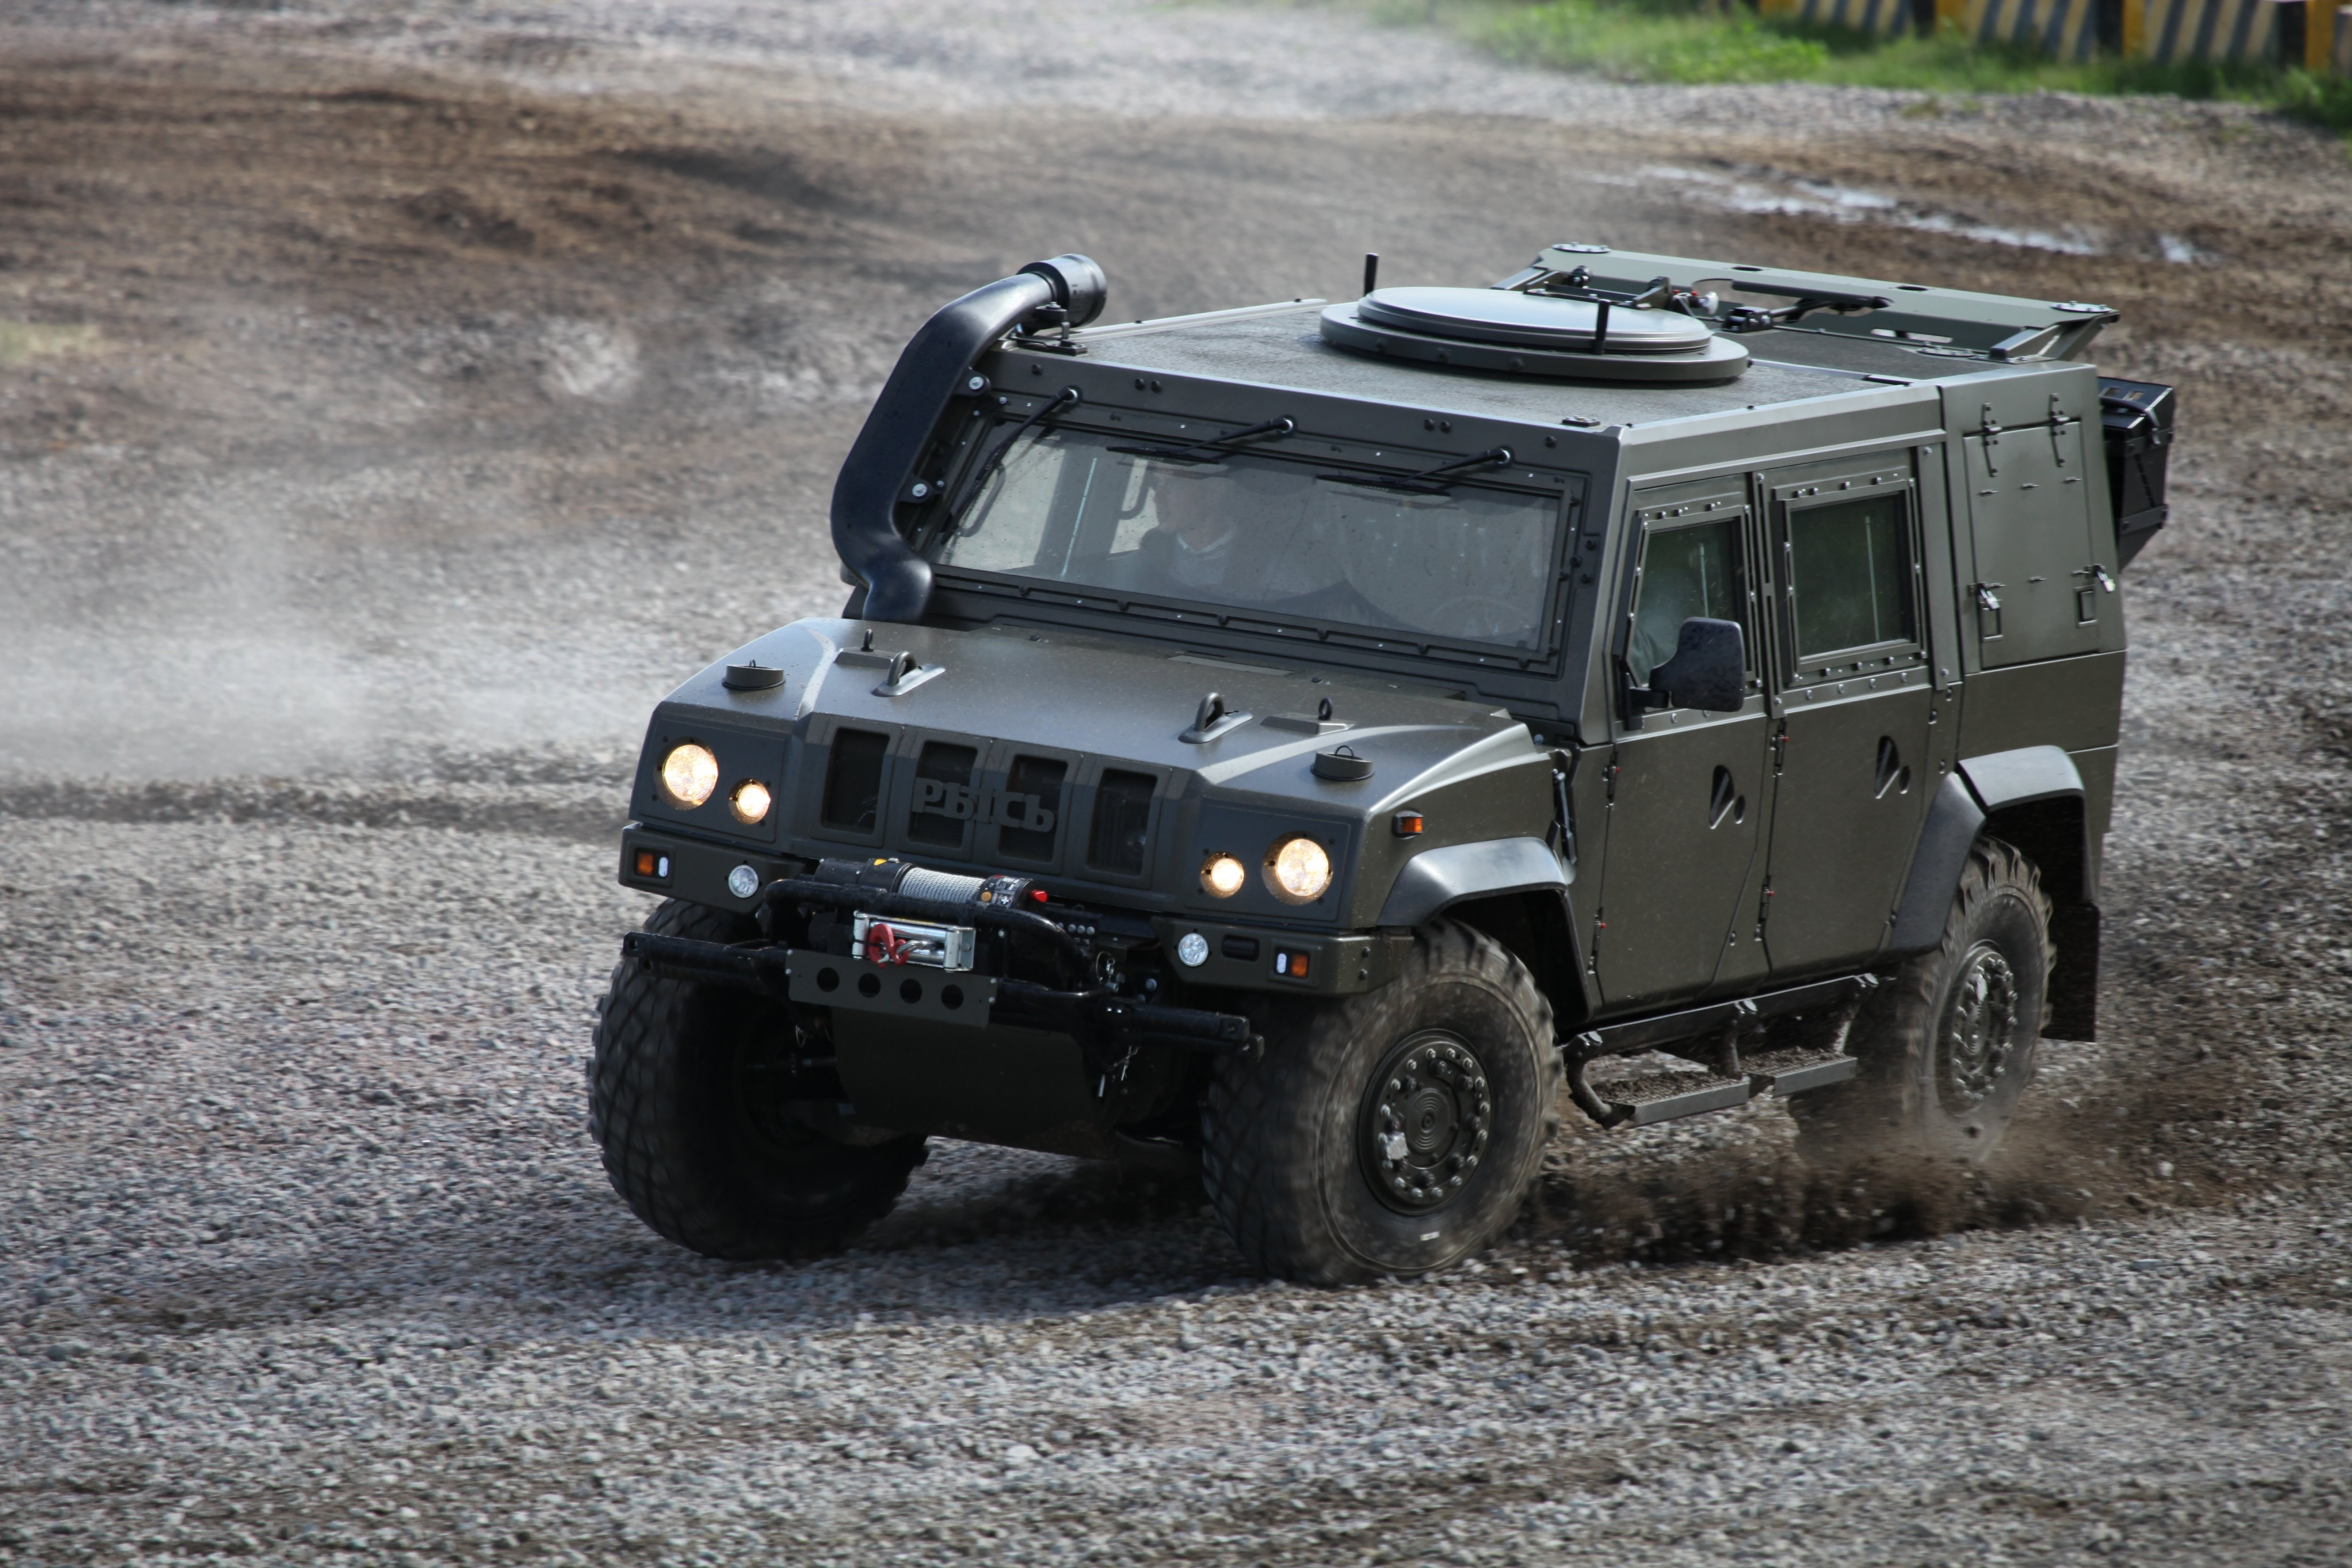 Armored Cars For Sale >> Wallpaper Iveco LMV, Lynx, VTLM Lince, vehicle, Russia, Russian Armed Forces, Military #1786